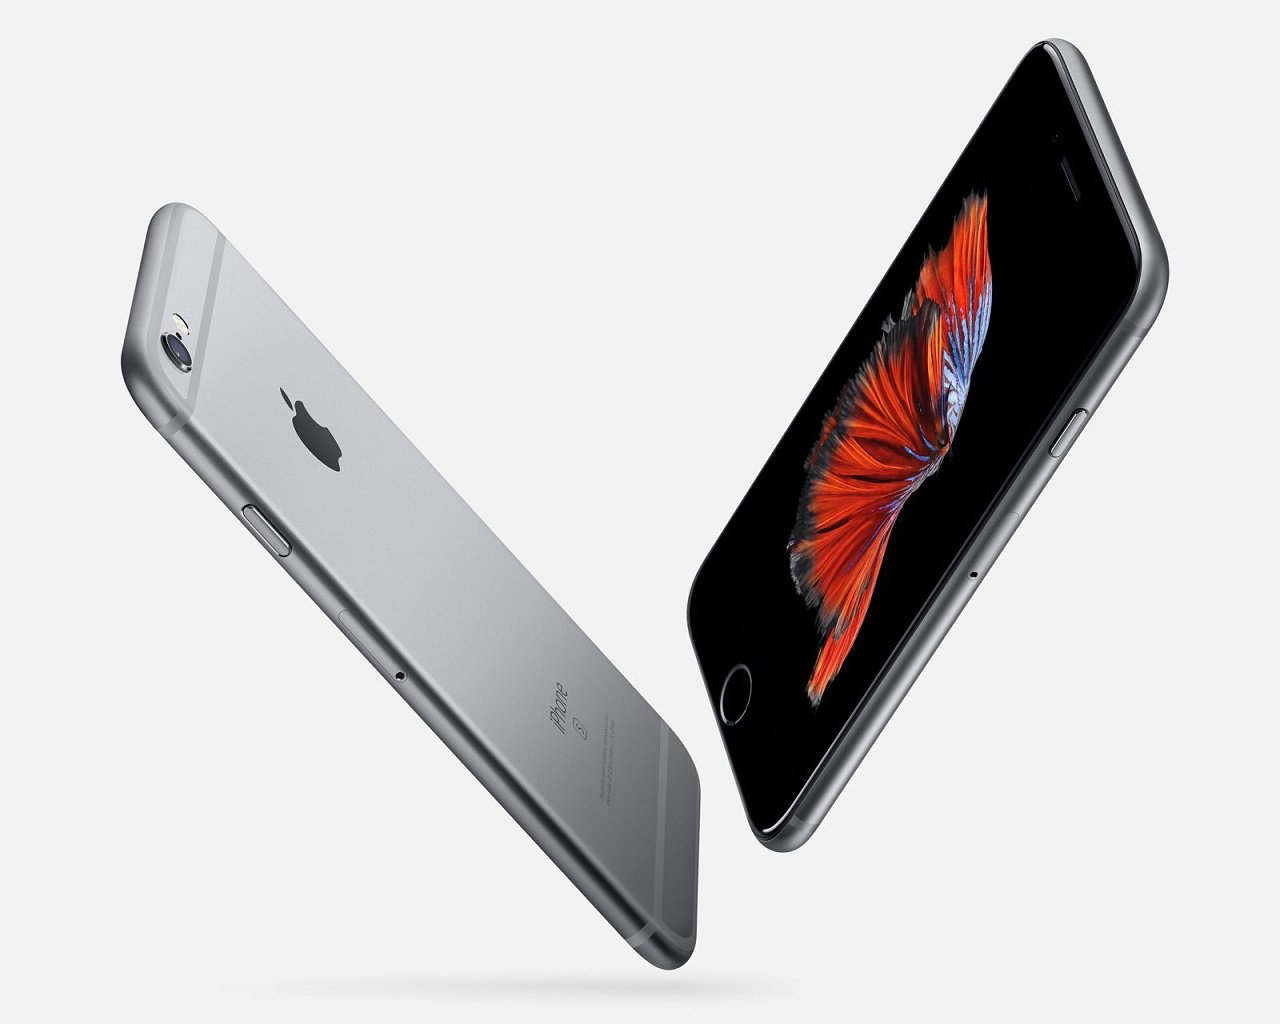 5 Reasons Not to Buy the iPhone 6s